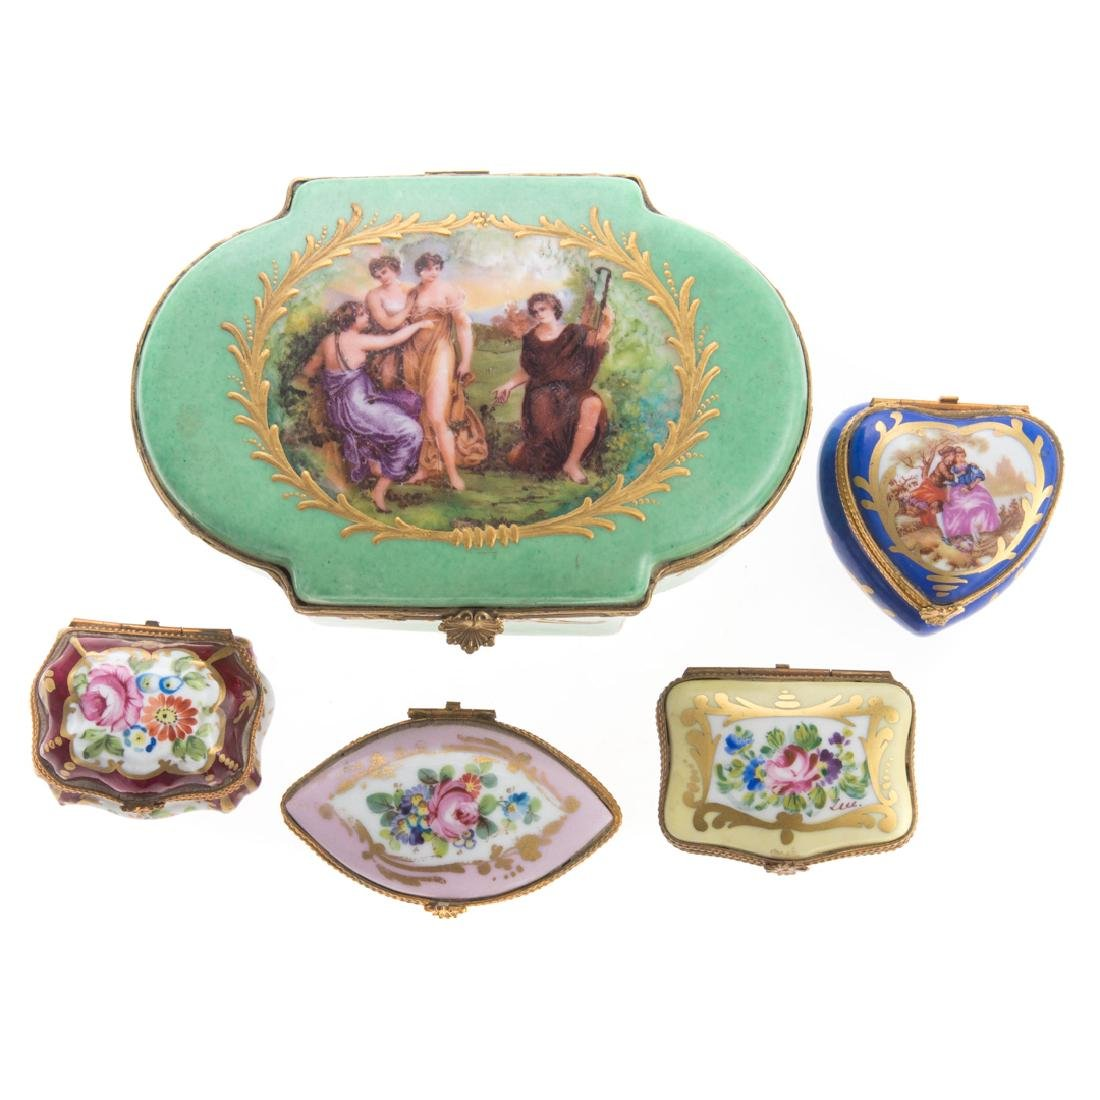 Five French porcelain vanity boxes